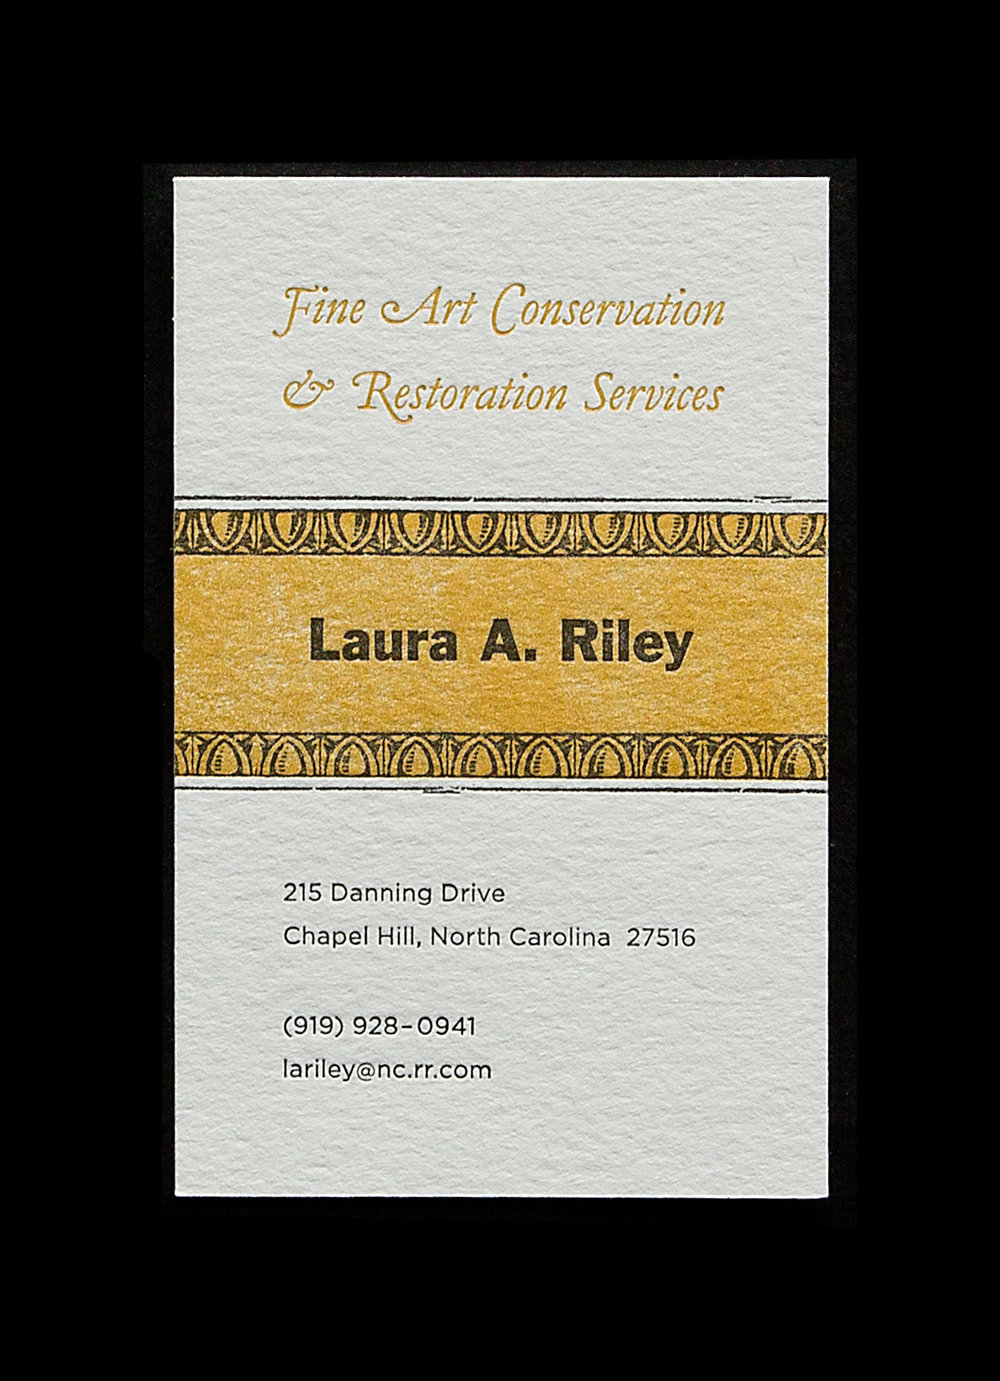 Slightly oversized business card. 2.5 x 4 inches. Purposefully letting the warm yellow background be mottled rather than a flat perfect solid. To show the beauty of irregularity/imperfection.